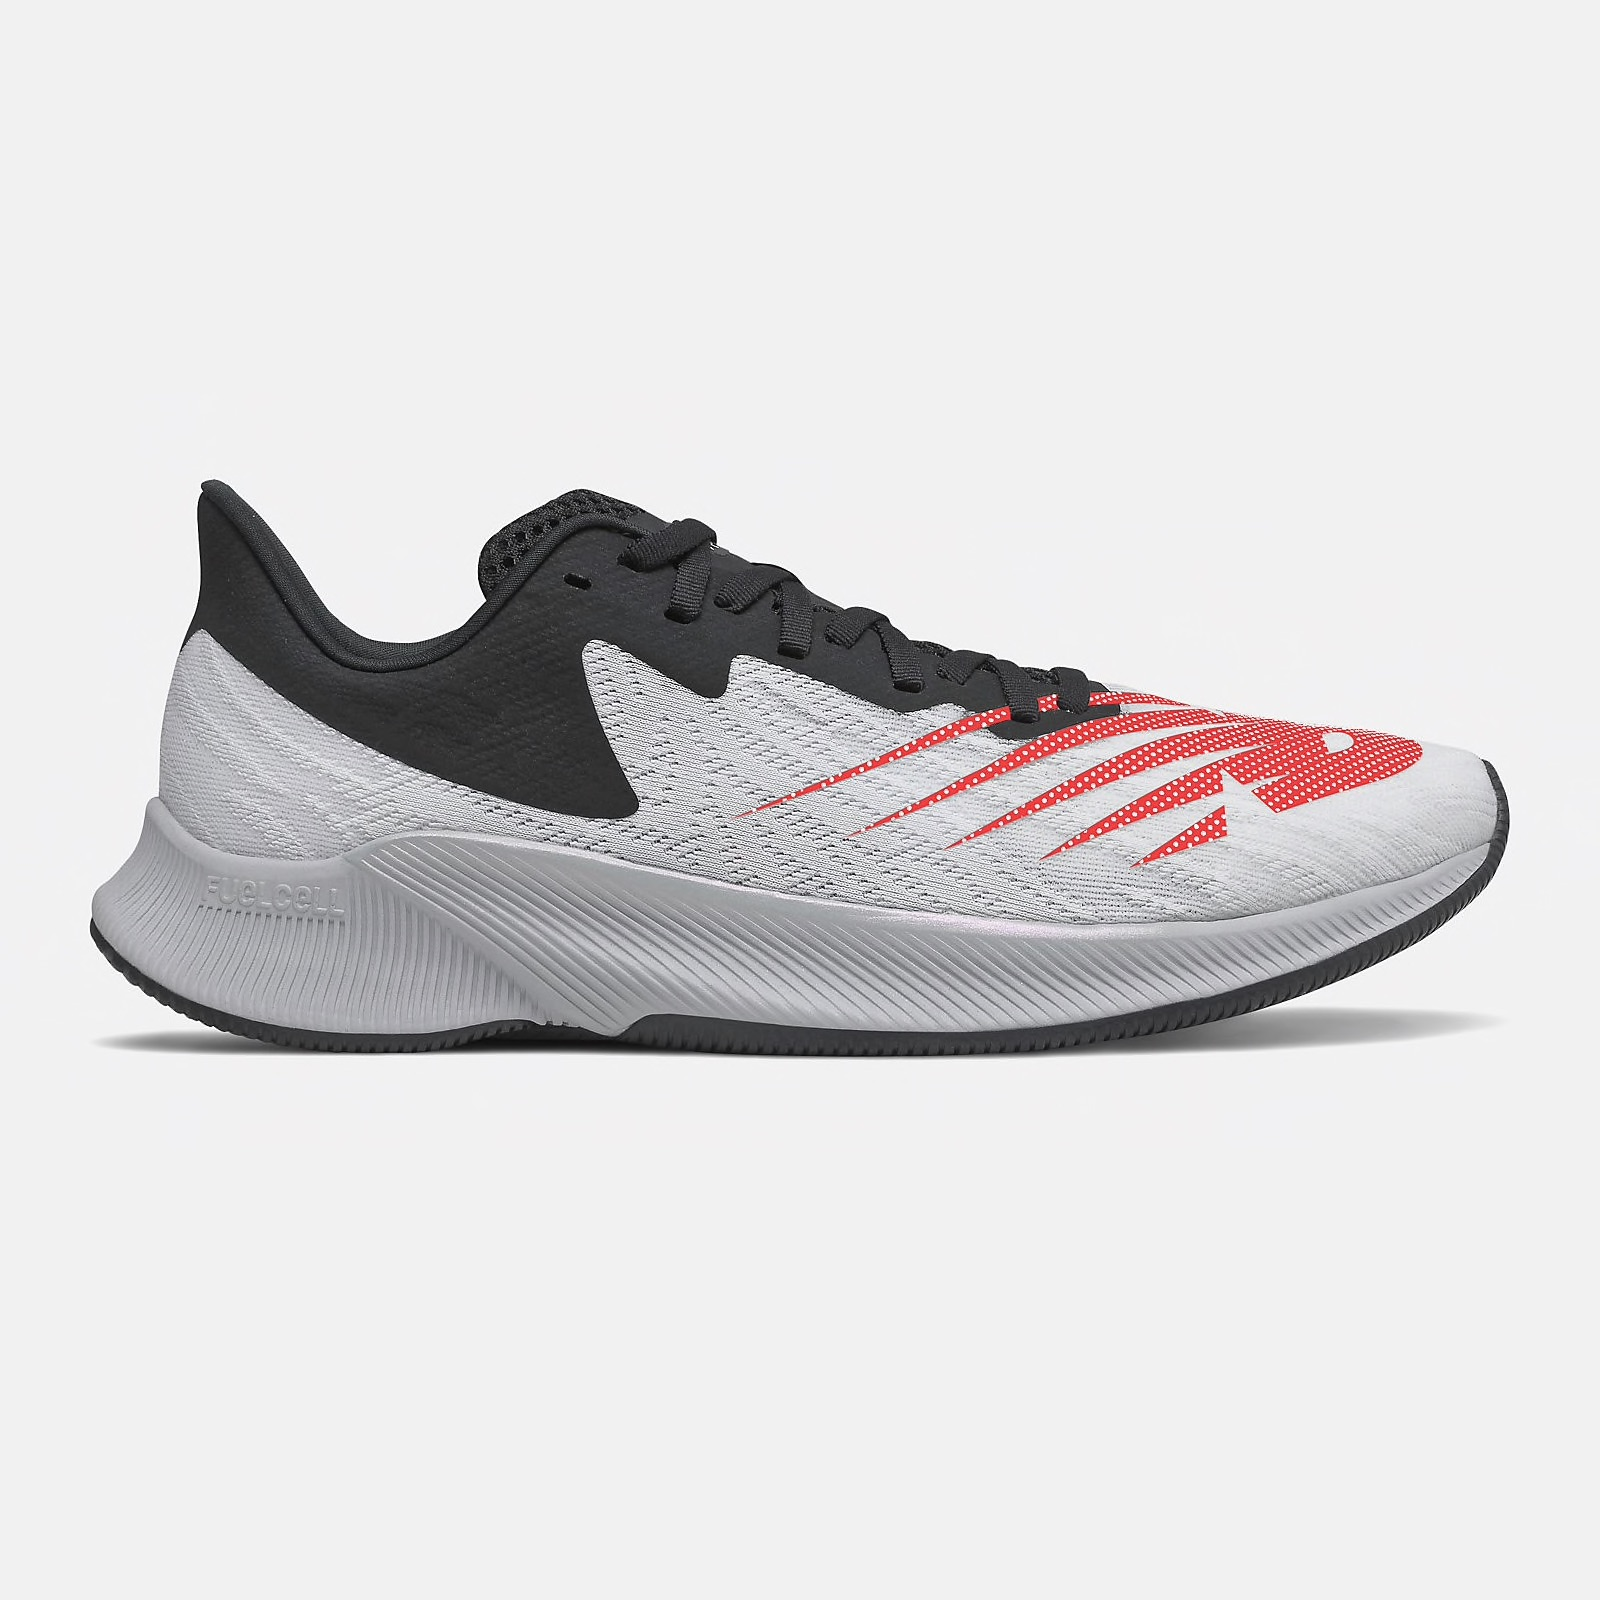 New Balance FuelCell Prism - Men